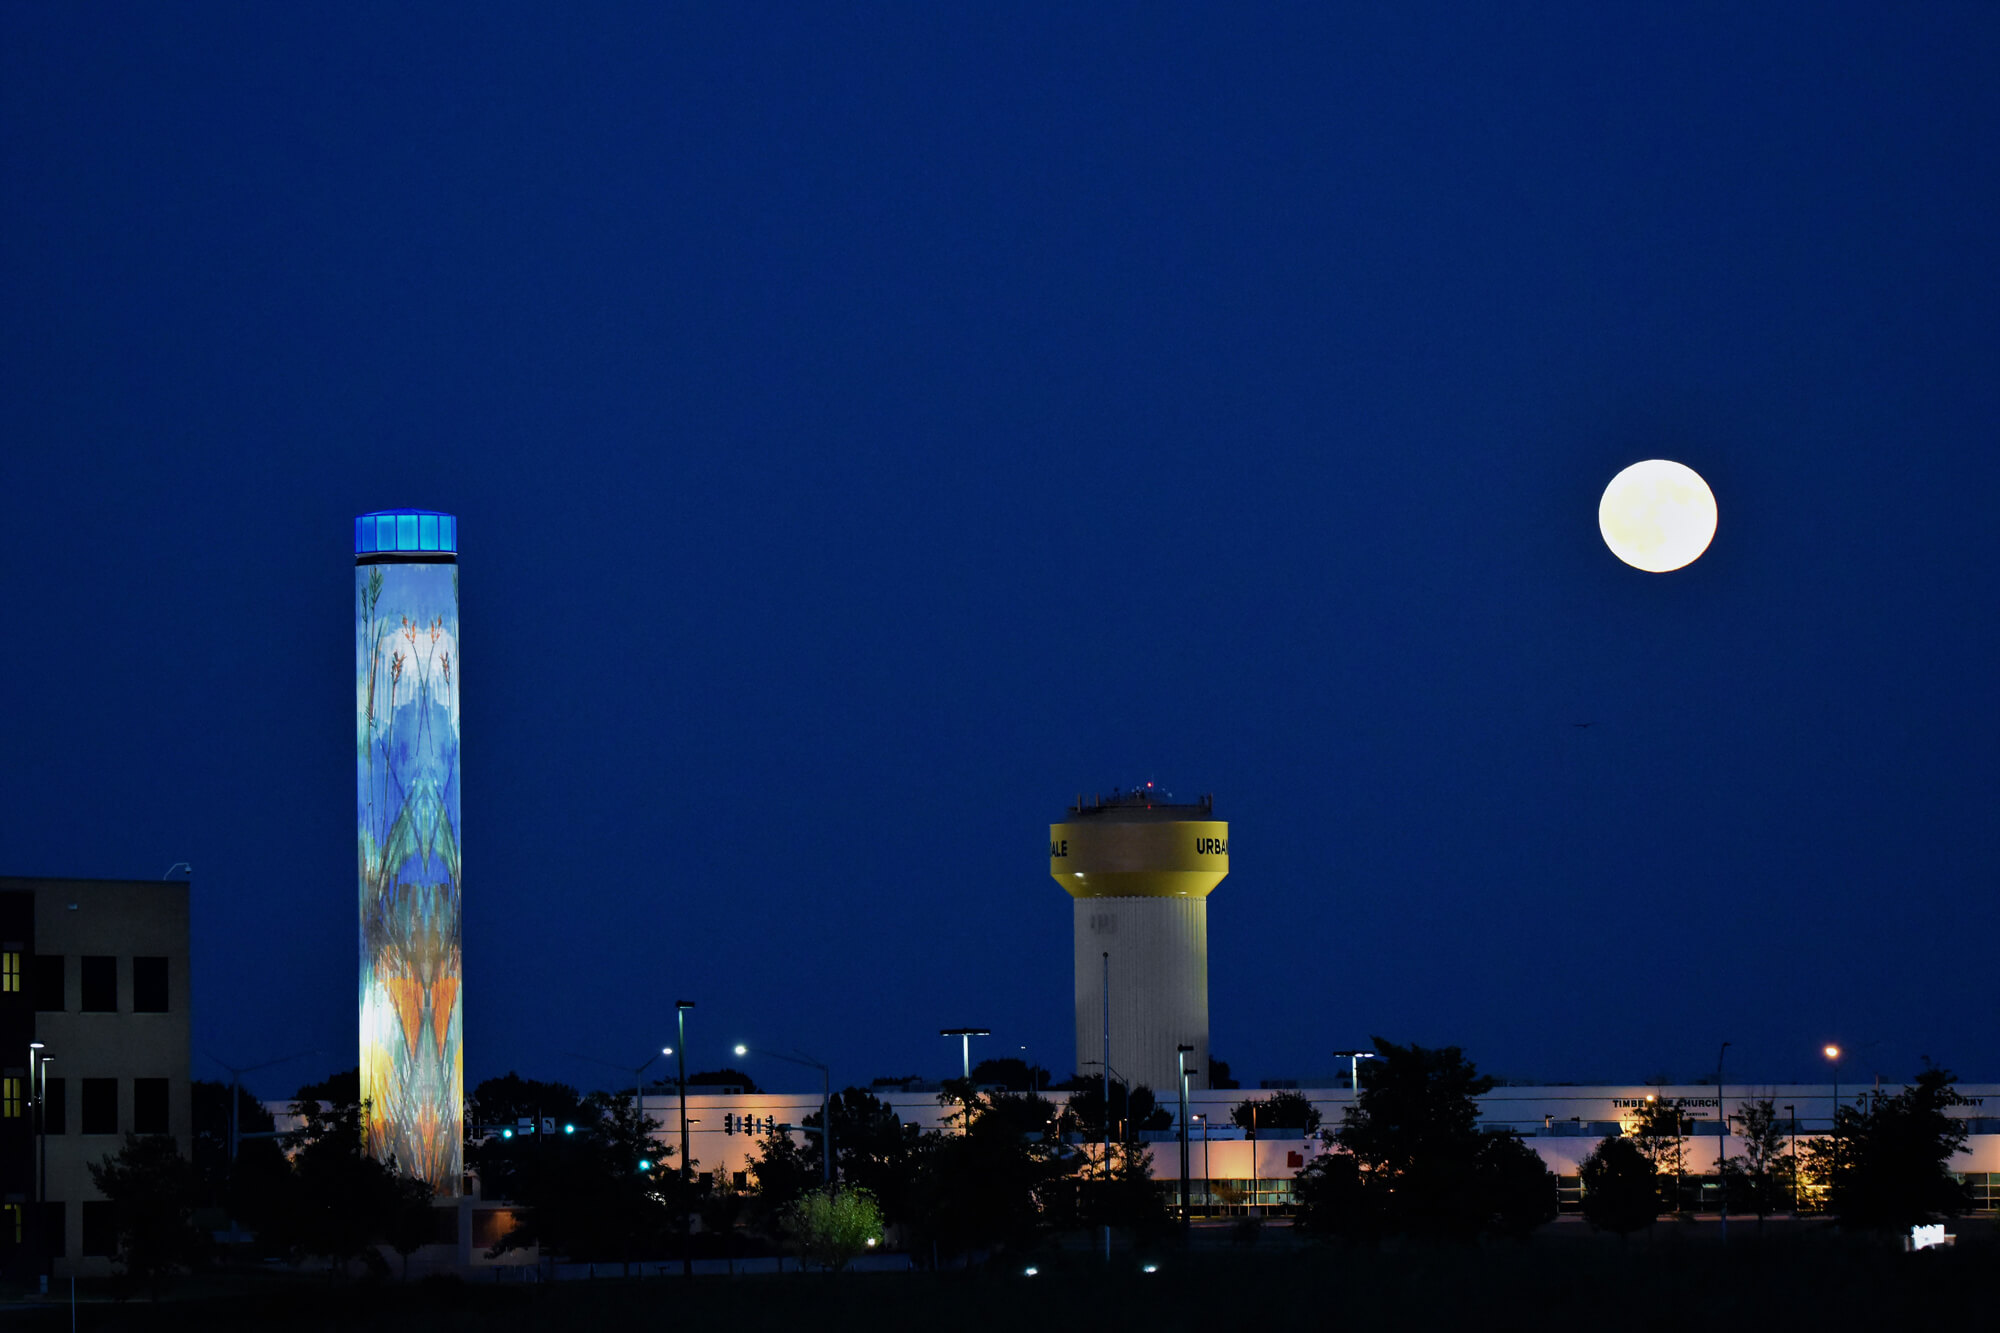 A view of the Urbandale skyline at night.